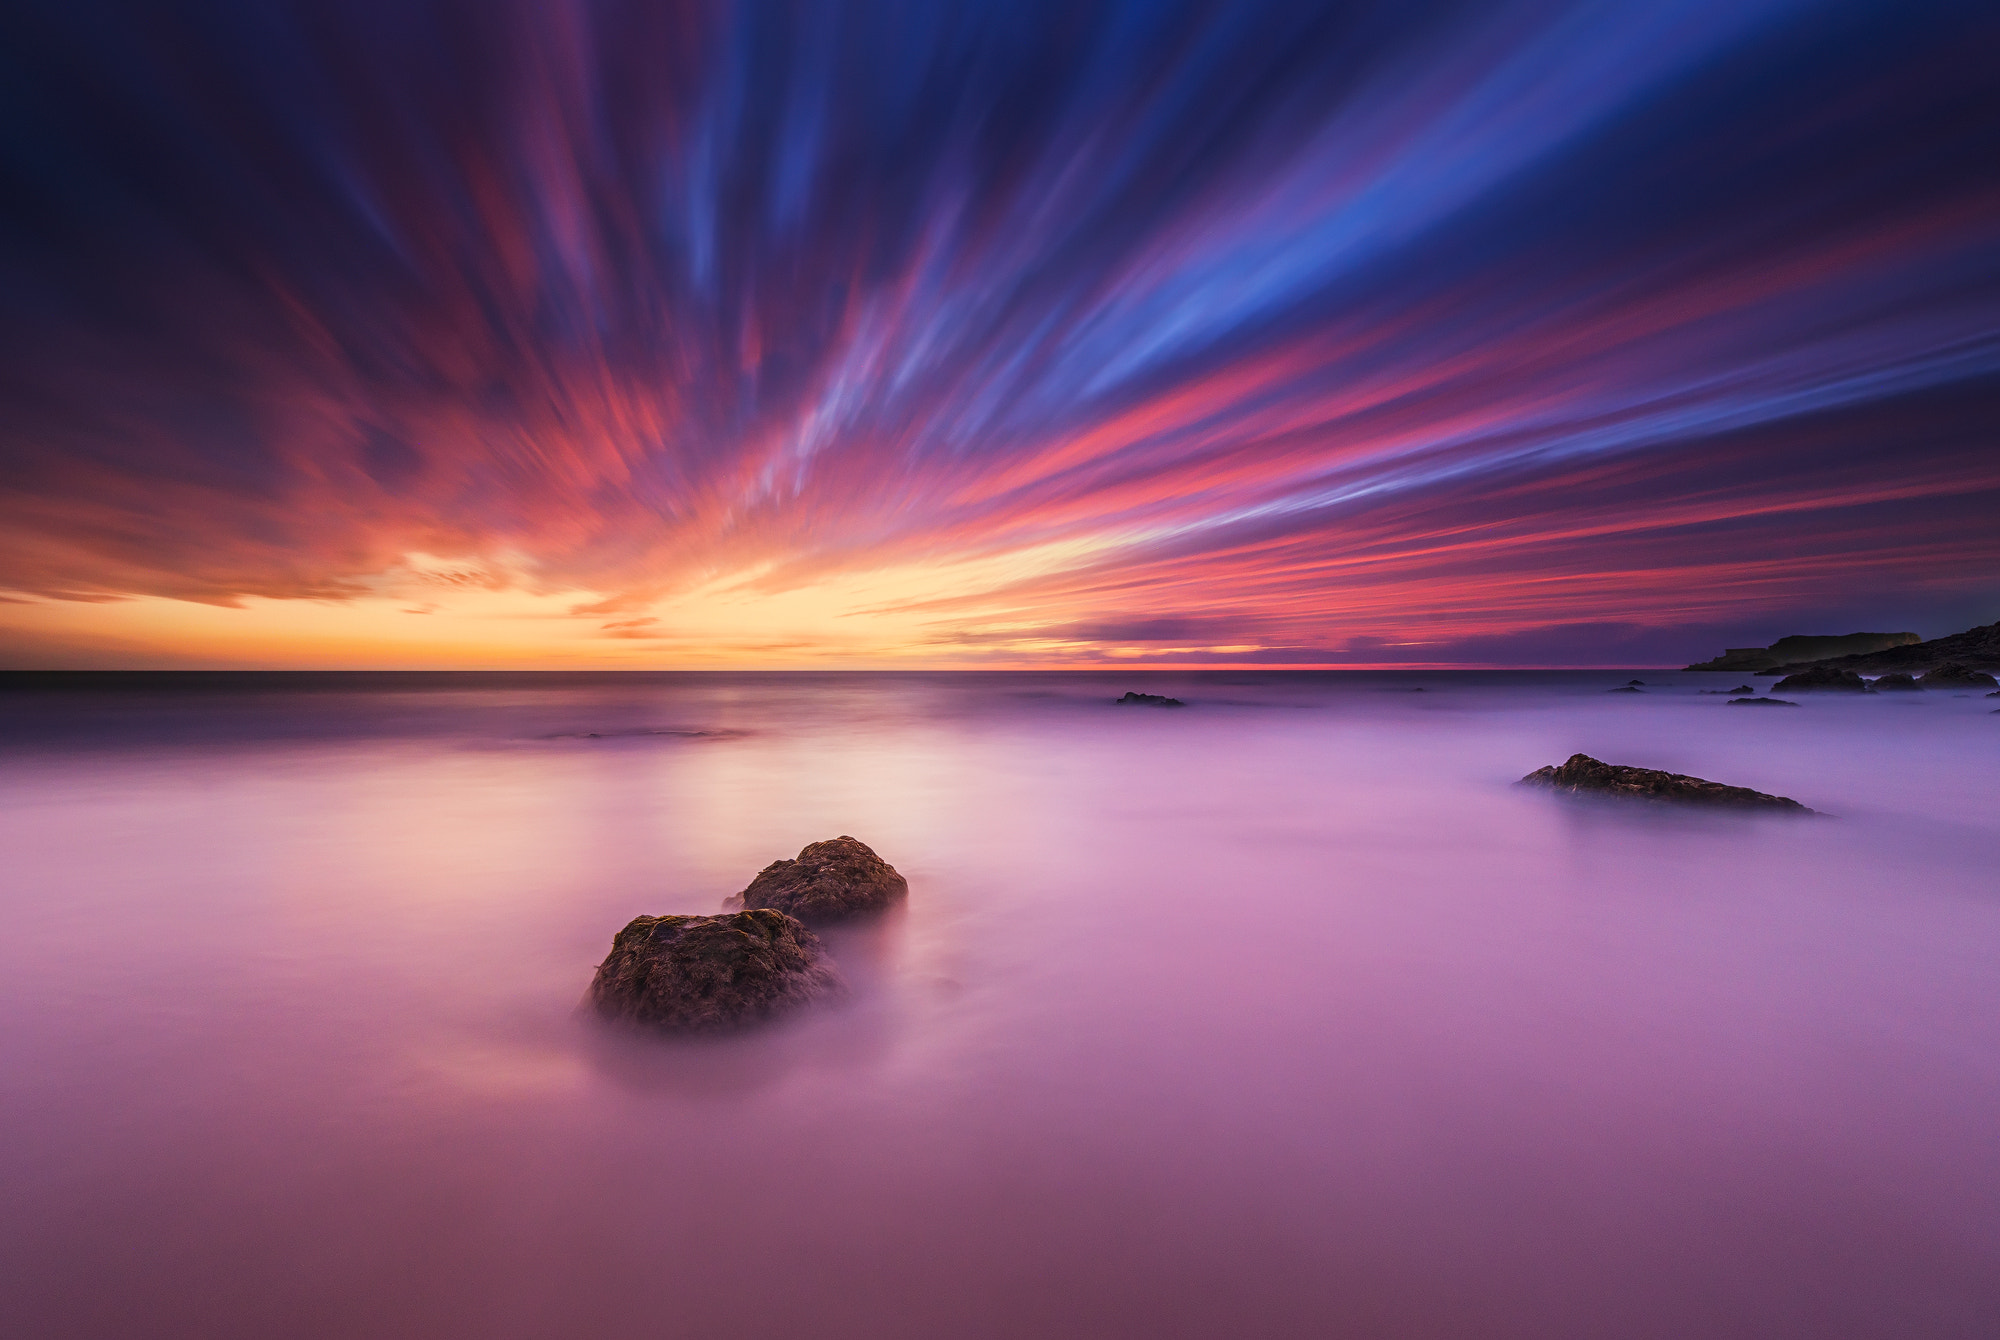 Photograph The last sunset lights by Carlos Solinis Camalich on 500px